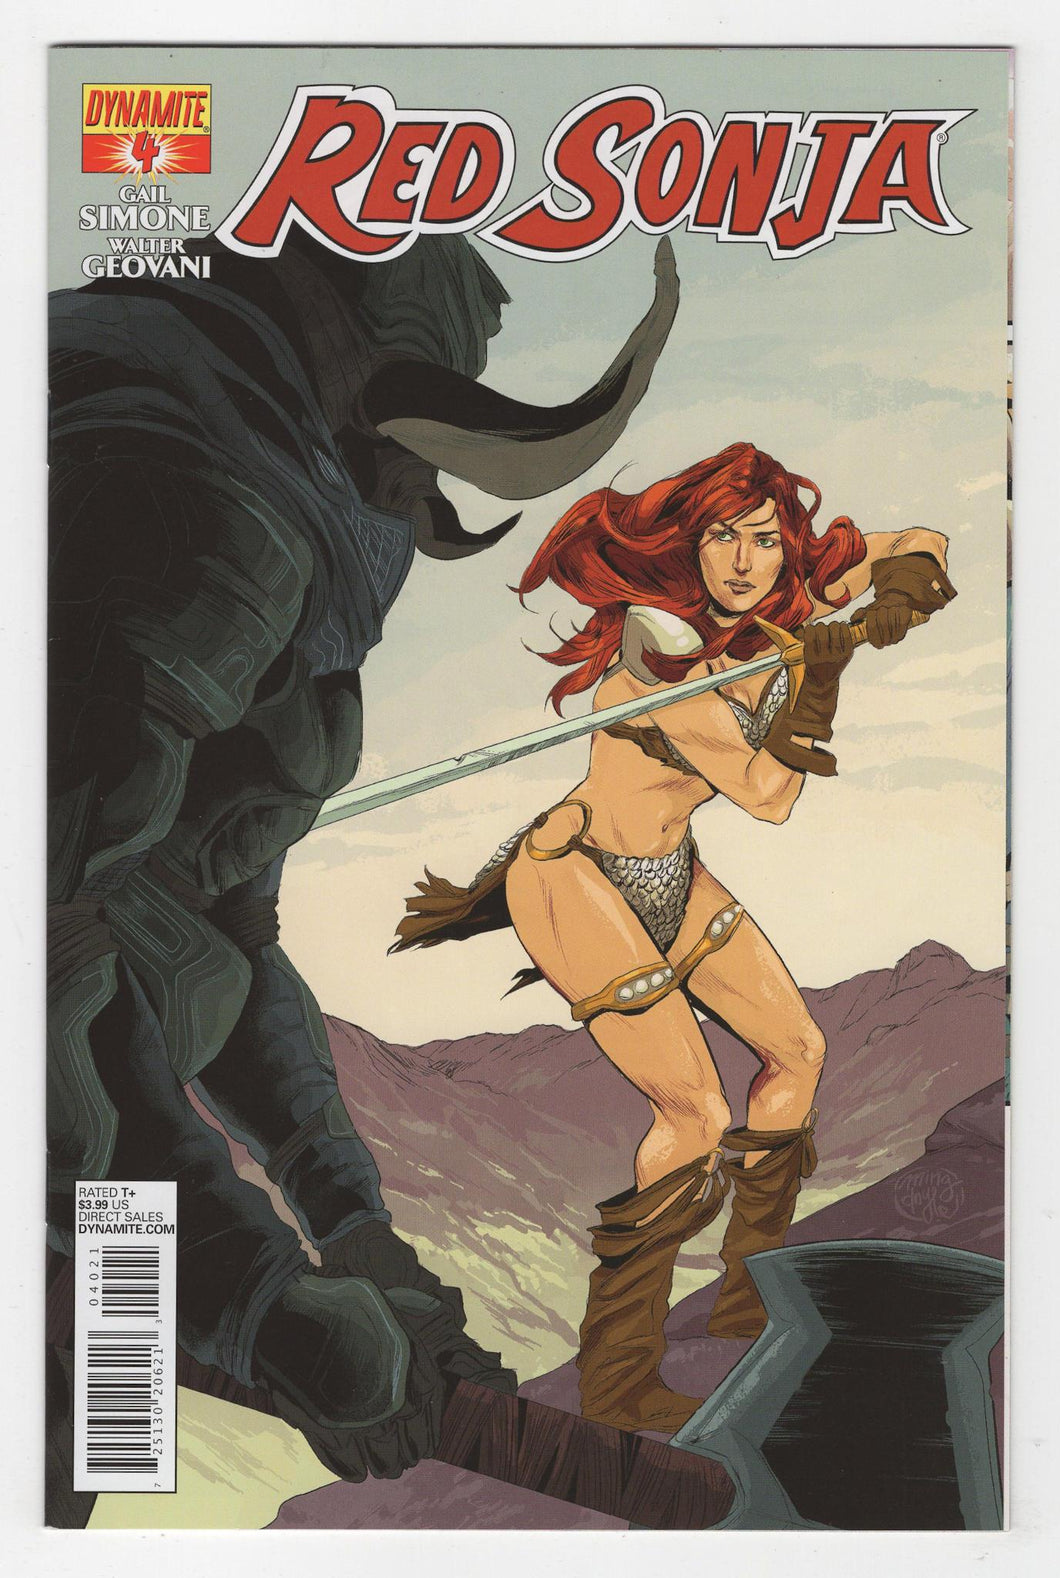 Red Sonja #4 Variant Cover Front